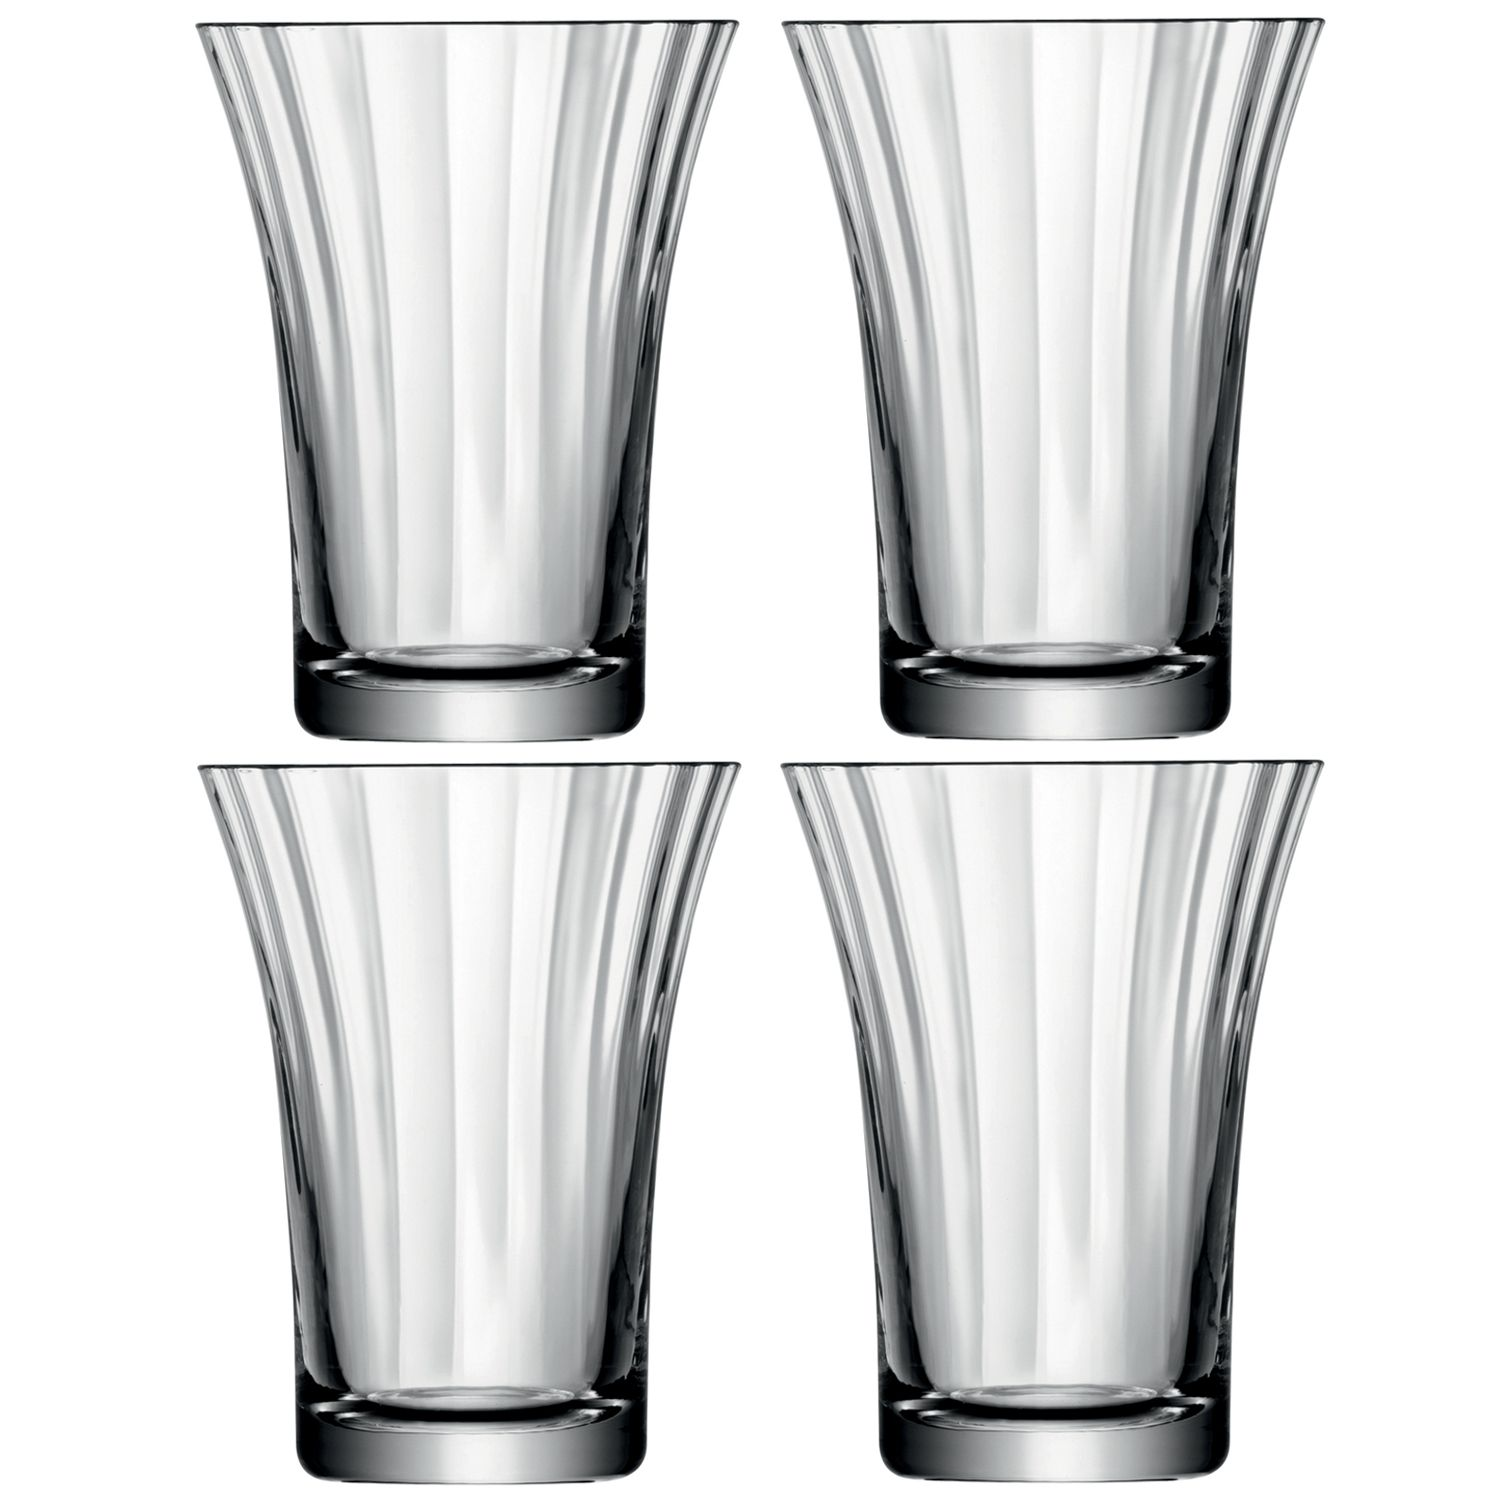 Aurelia tumbler glasses clear optic set of 4